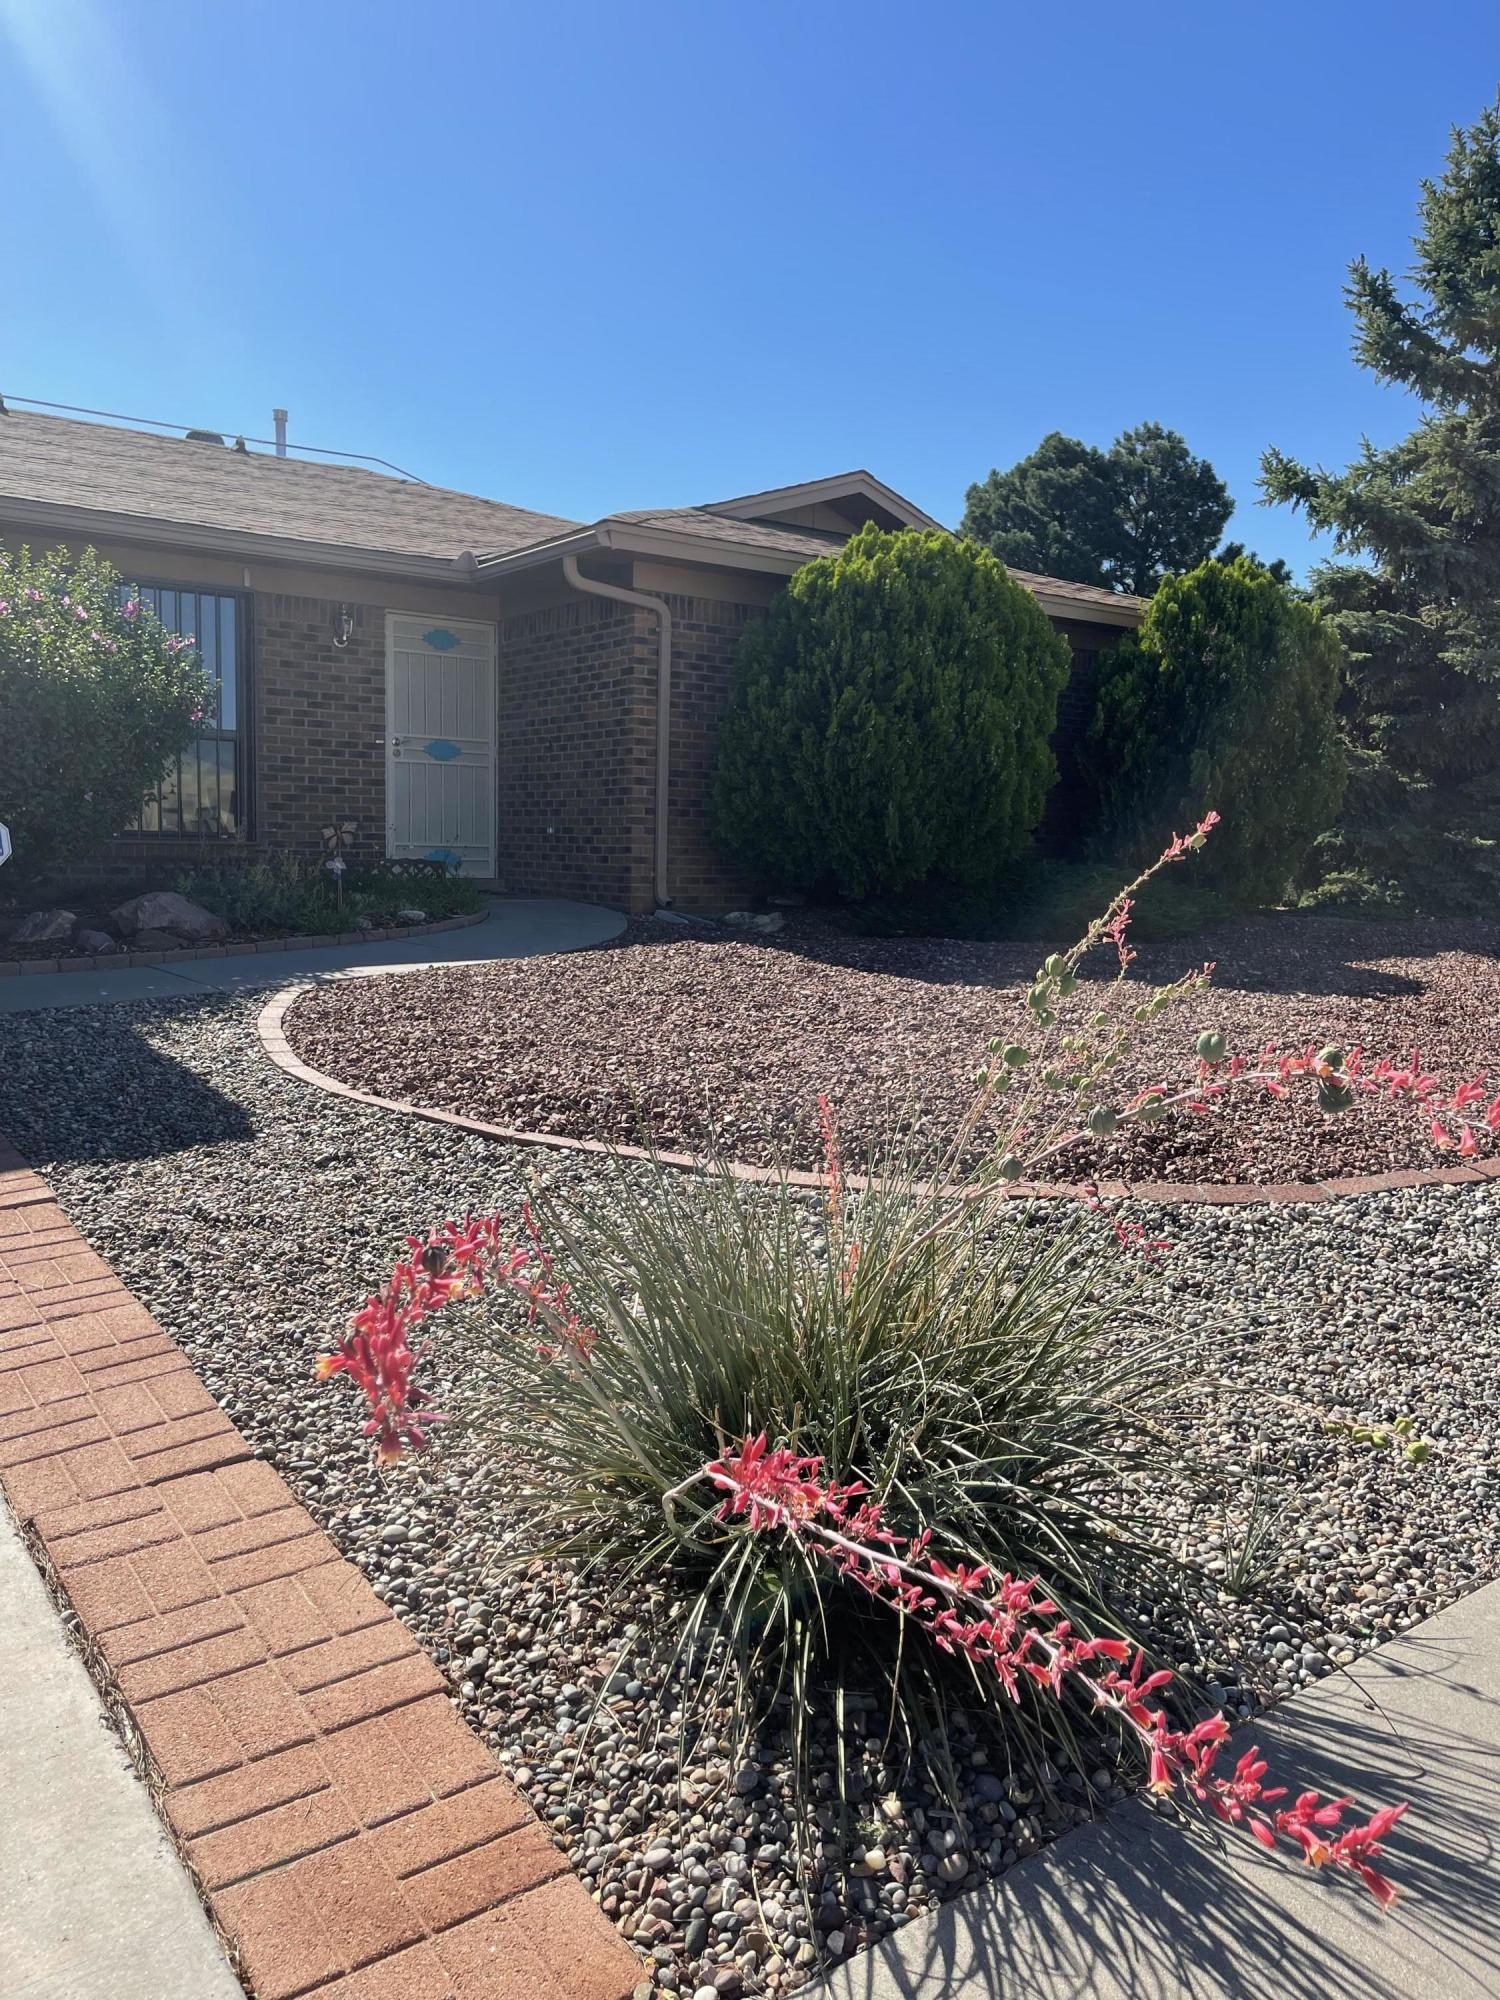 WELCOME HOME to this beautifully maintained, manicured home near the foothills. Owned Solar, refrigerated air unit is newer and heater and roof are approximately 4 years old. You will enjoy the evenings in the mature backyard landscaping under the covered porch. The floor plan provides options galore and open, bright spaces to meet your needs.  Garage has increased depth and the extra workshop space is wonderful for storage or toys! Enjoy hiking, biking and living in this desirable neighborhood.